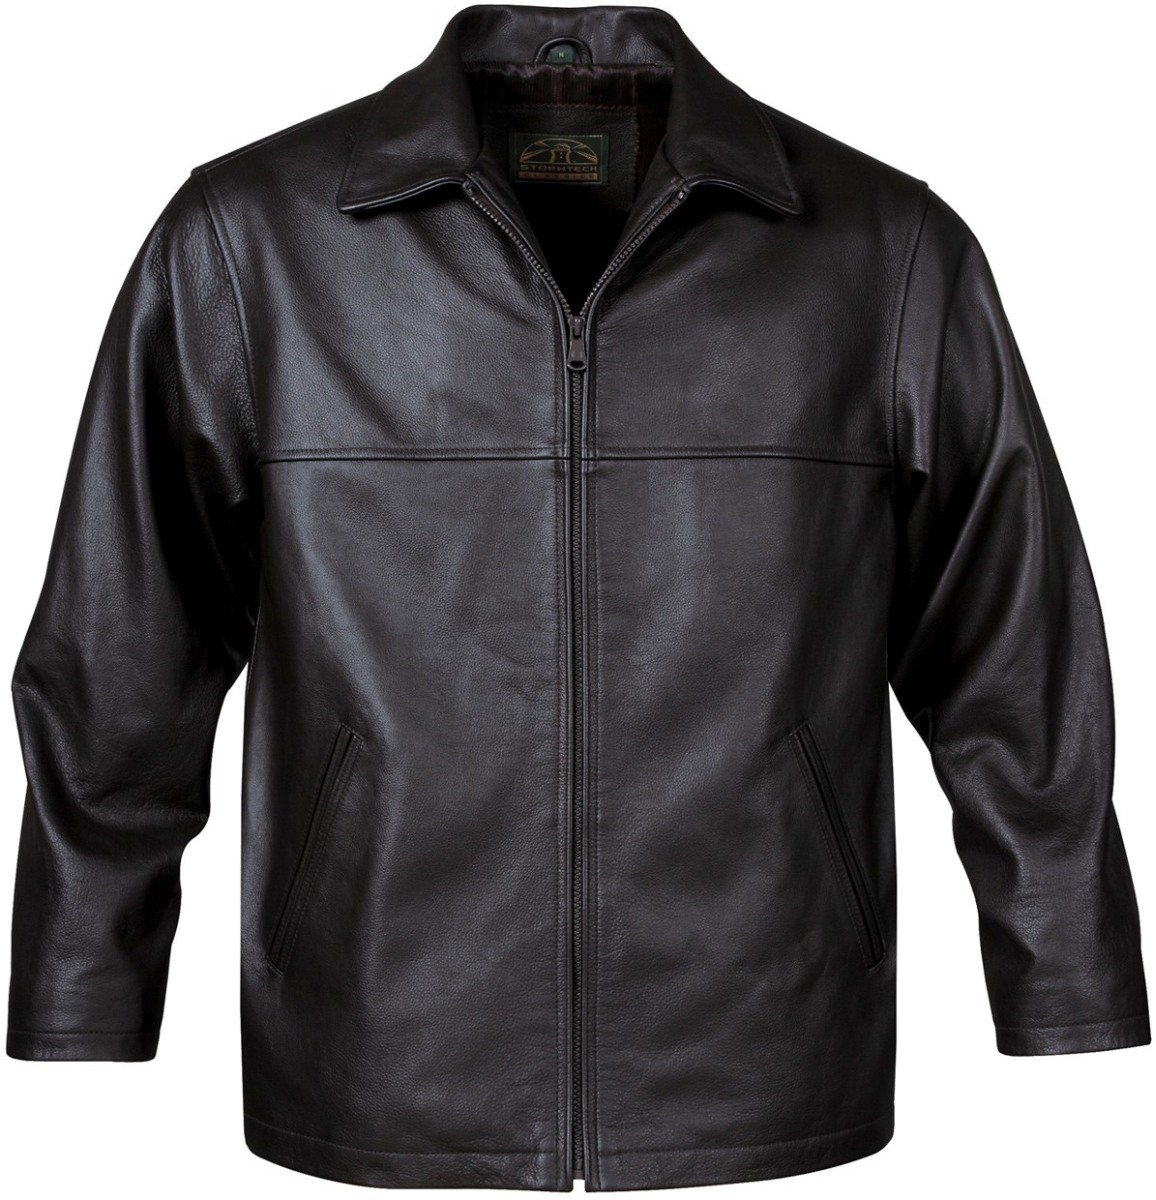 Men's Stormtech Classic Leather Jacket-StormTech